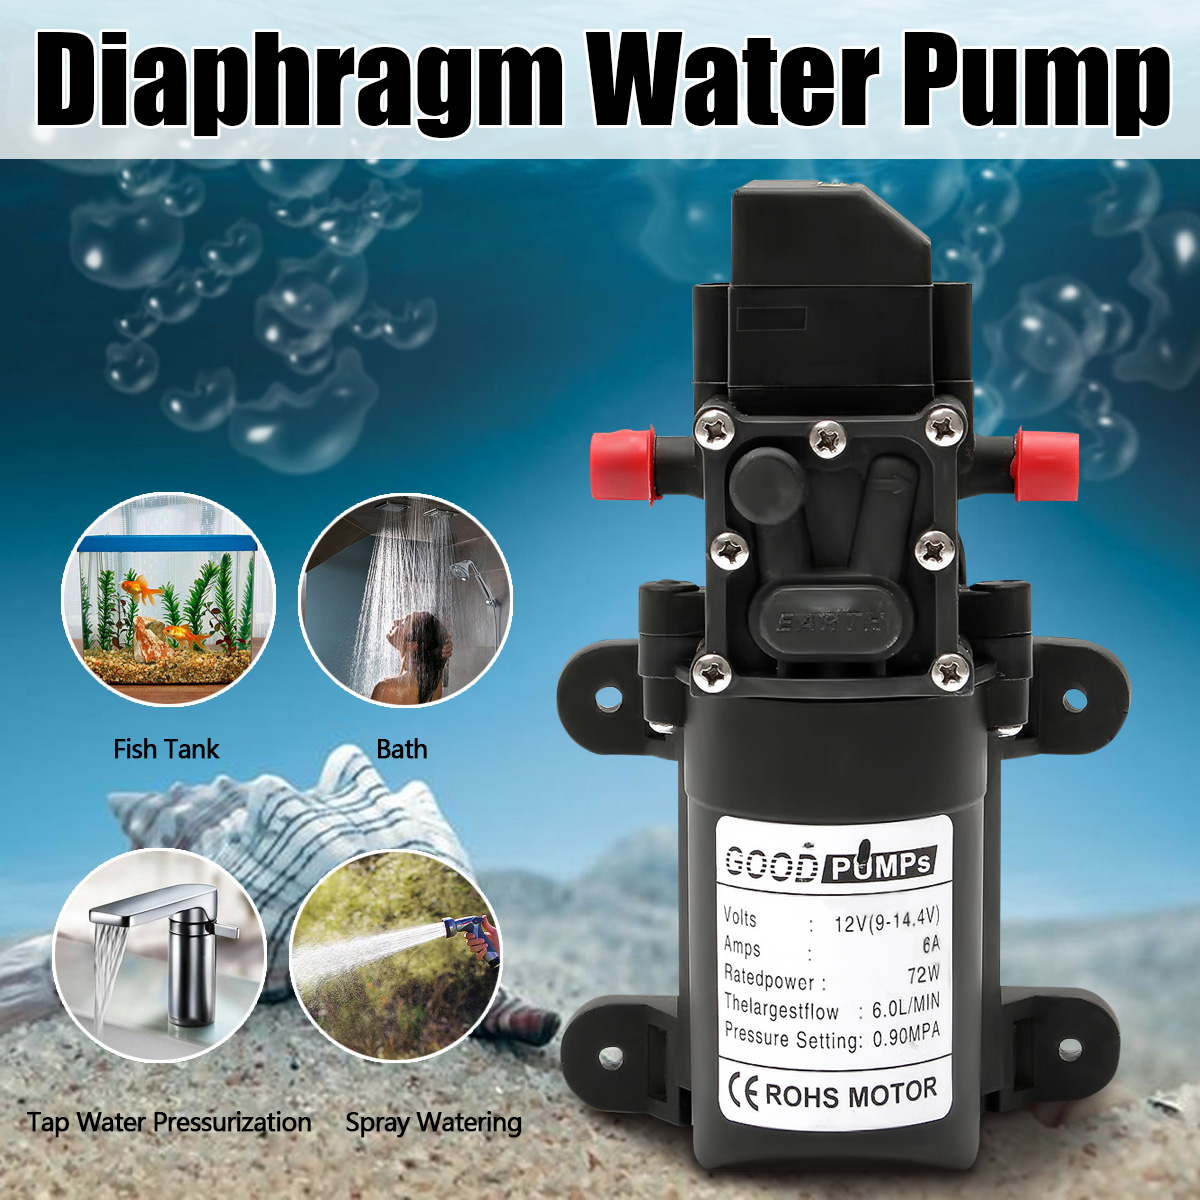 DC 12V <font><b>130PSI</b></font> 6L/Min Water High Pressure Diaphragm Water <font><b>Pump</b></font> Self Priming <font><b>Pump</b></font> Automatic Switch image